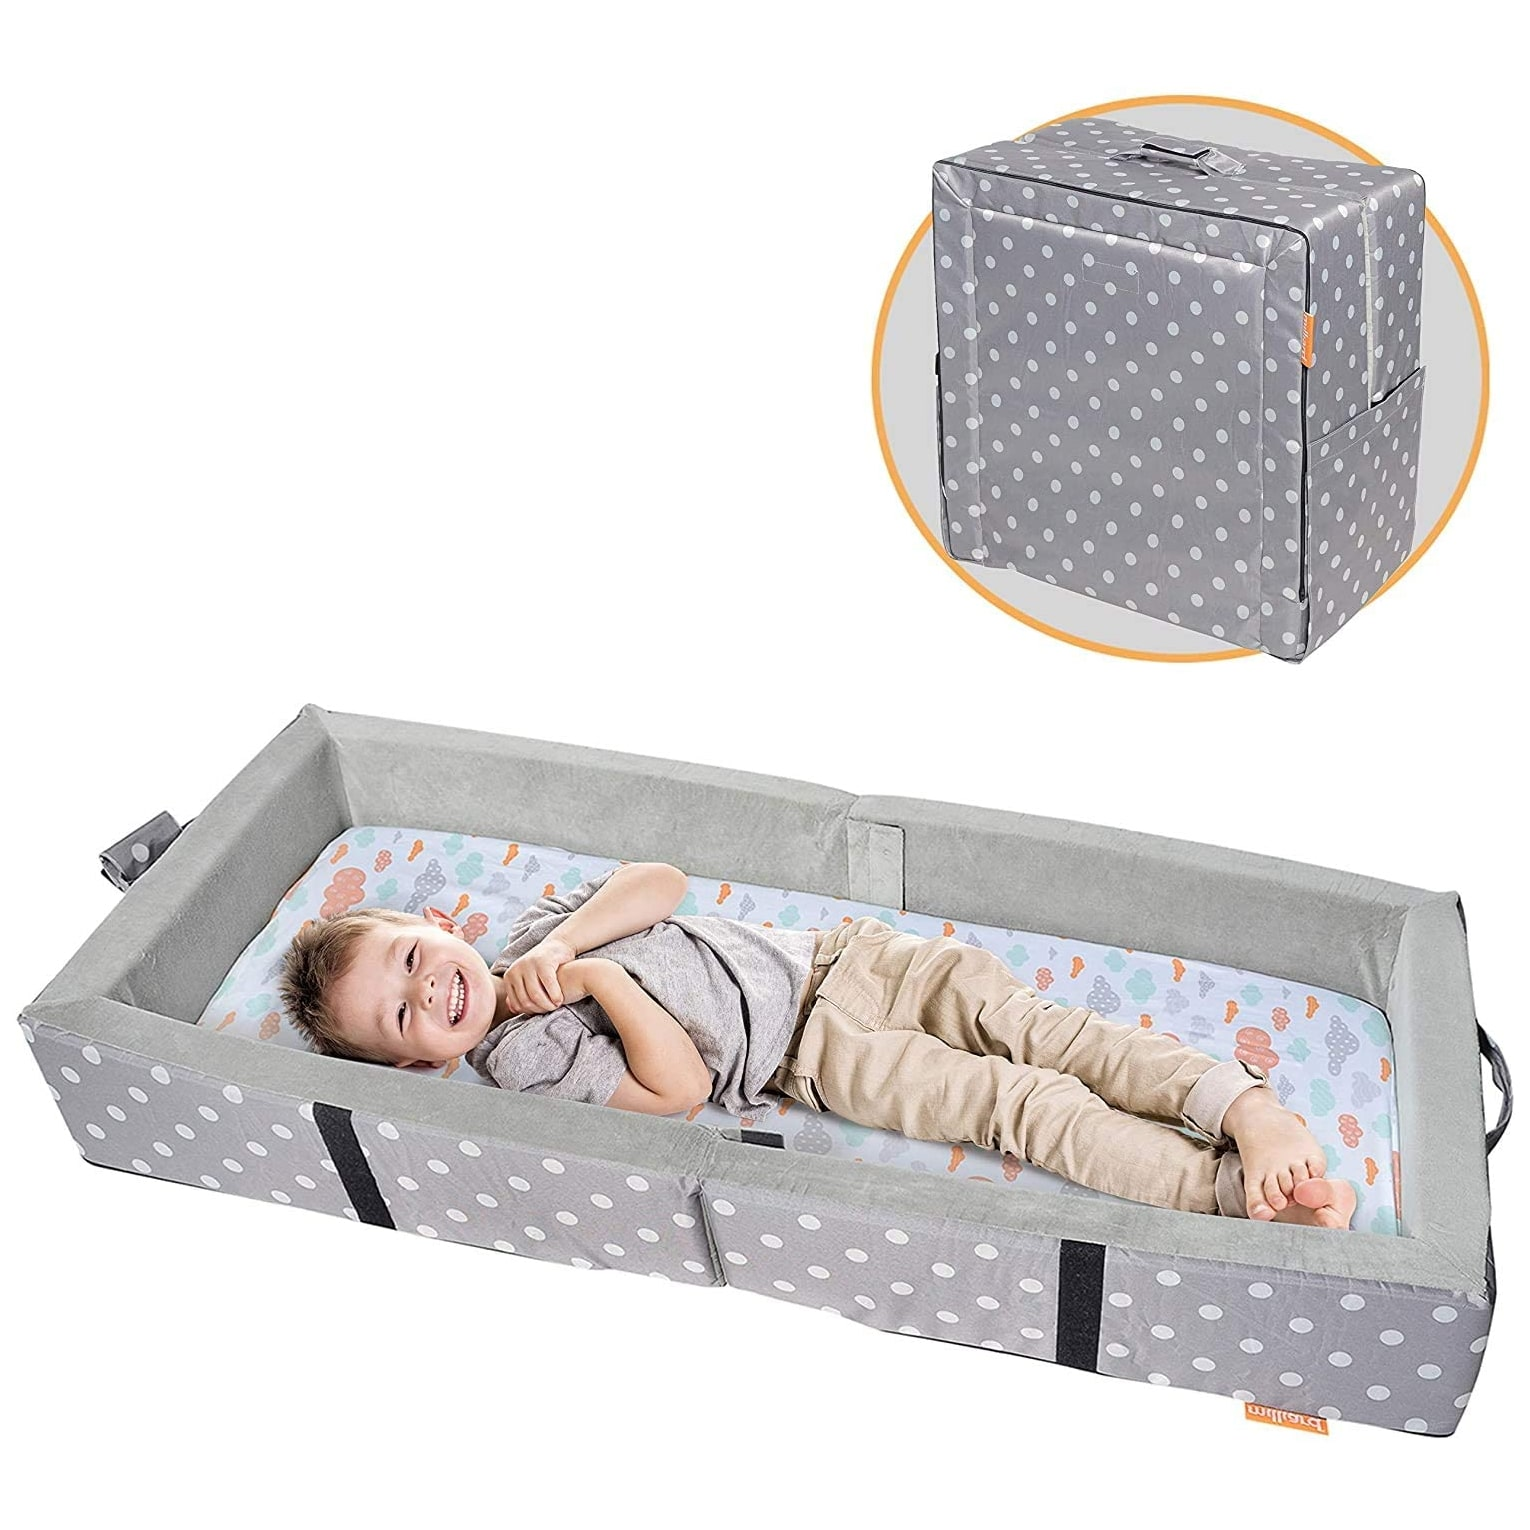 5 Best Toddler Travel Beds (May 2020) — Reviews & Buying Guide